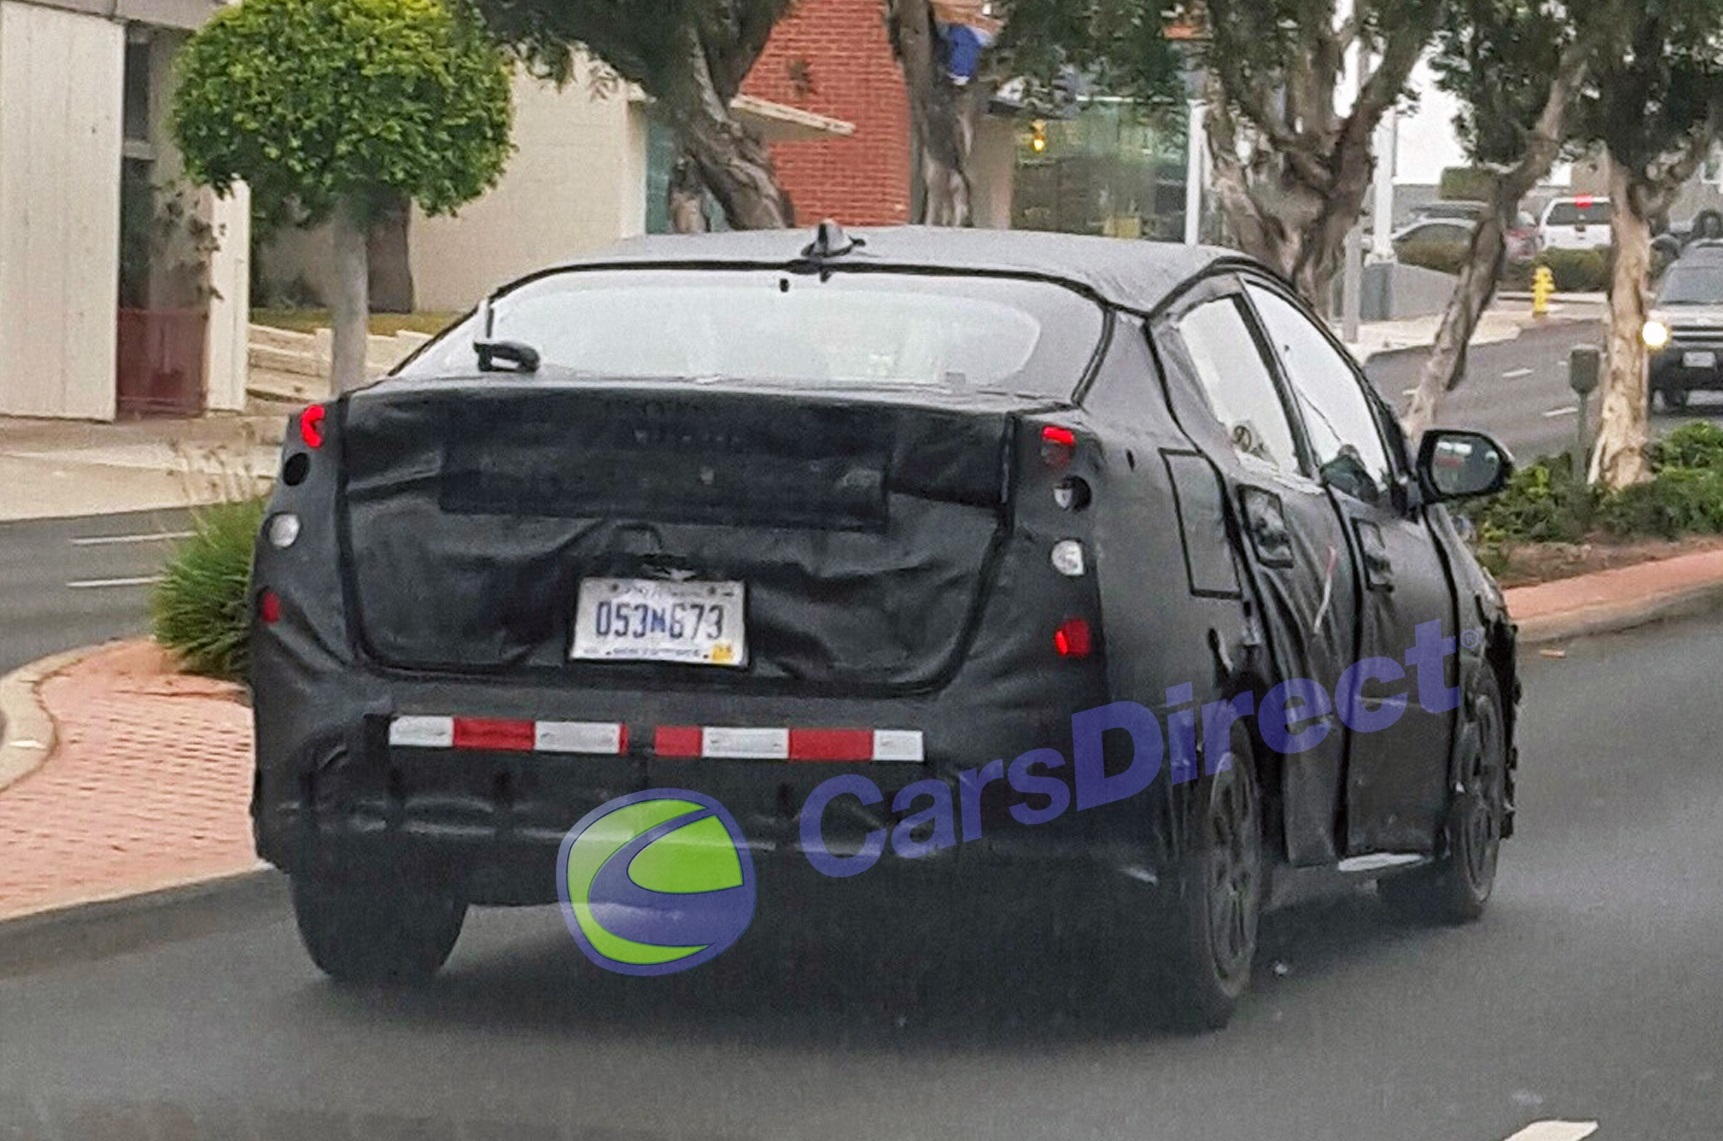 2016 Toyota Prius Hybrid Clearer Spy Shot Of High Tailed Rear